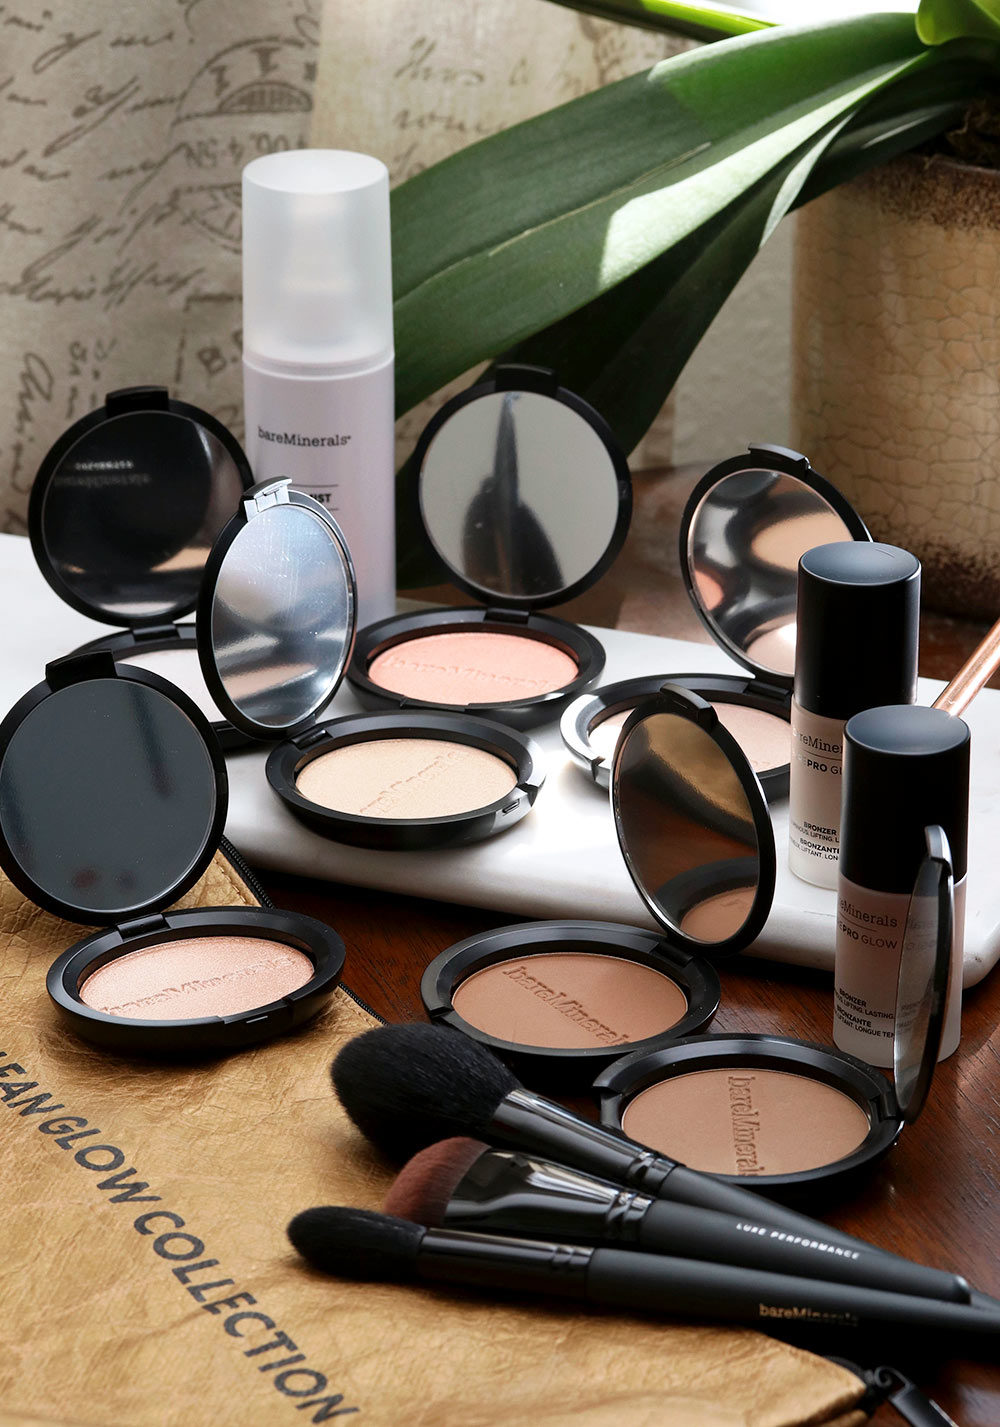 bareminerals clean glow collection summer 2019 2